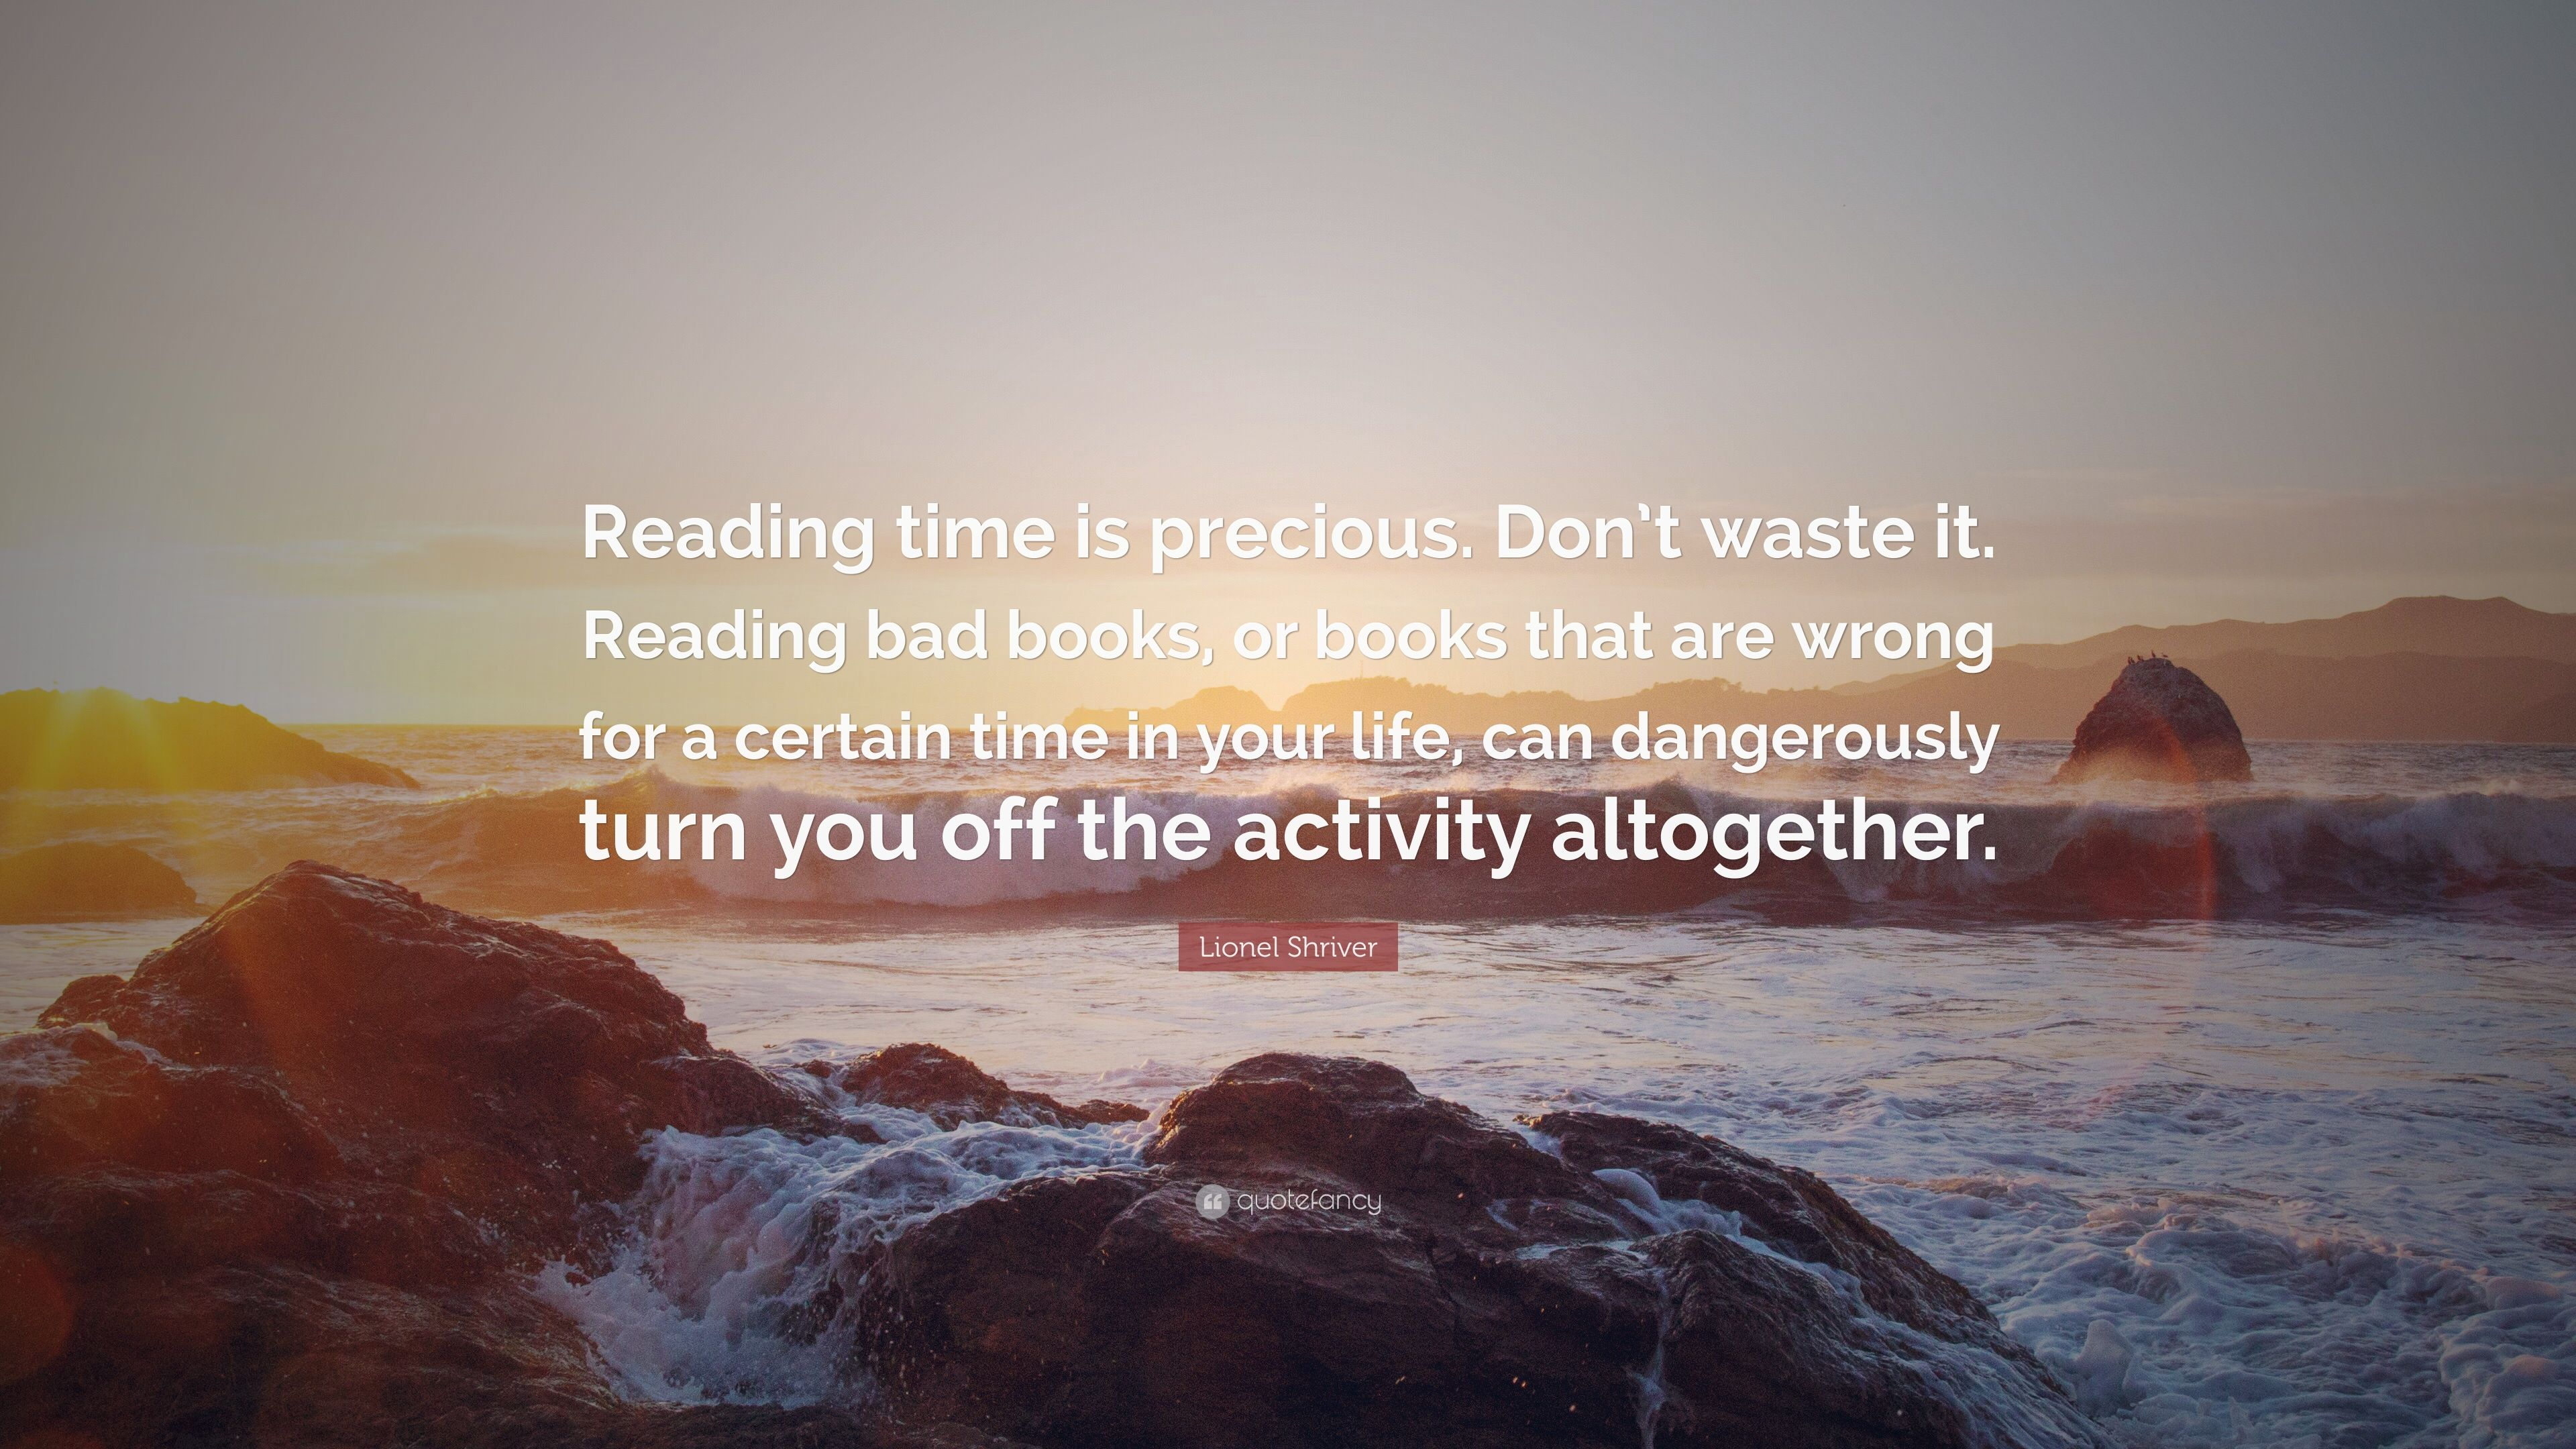 Lionel Shriver Quote Reading Time Is Precious Dont Waste It